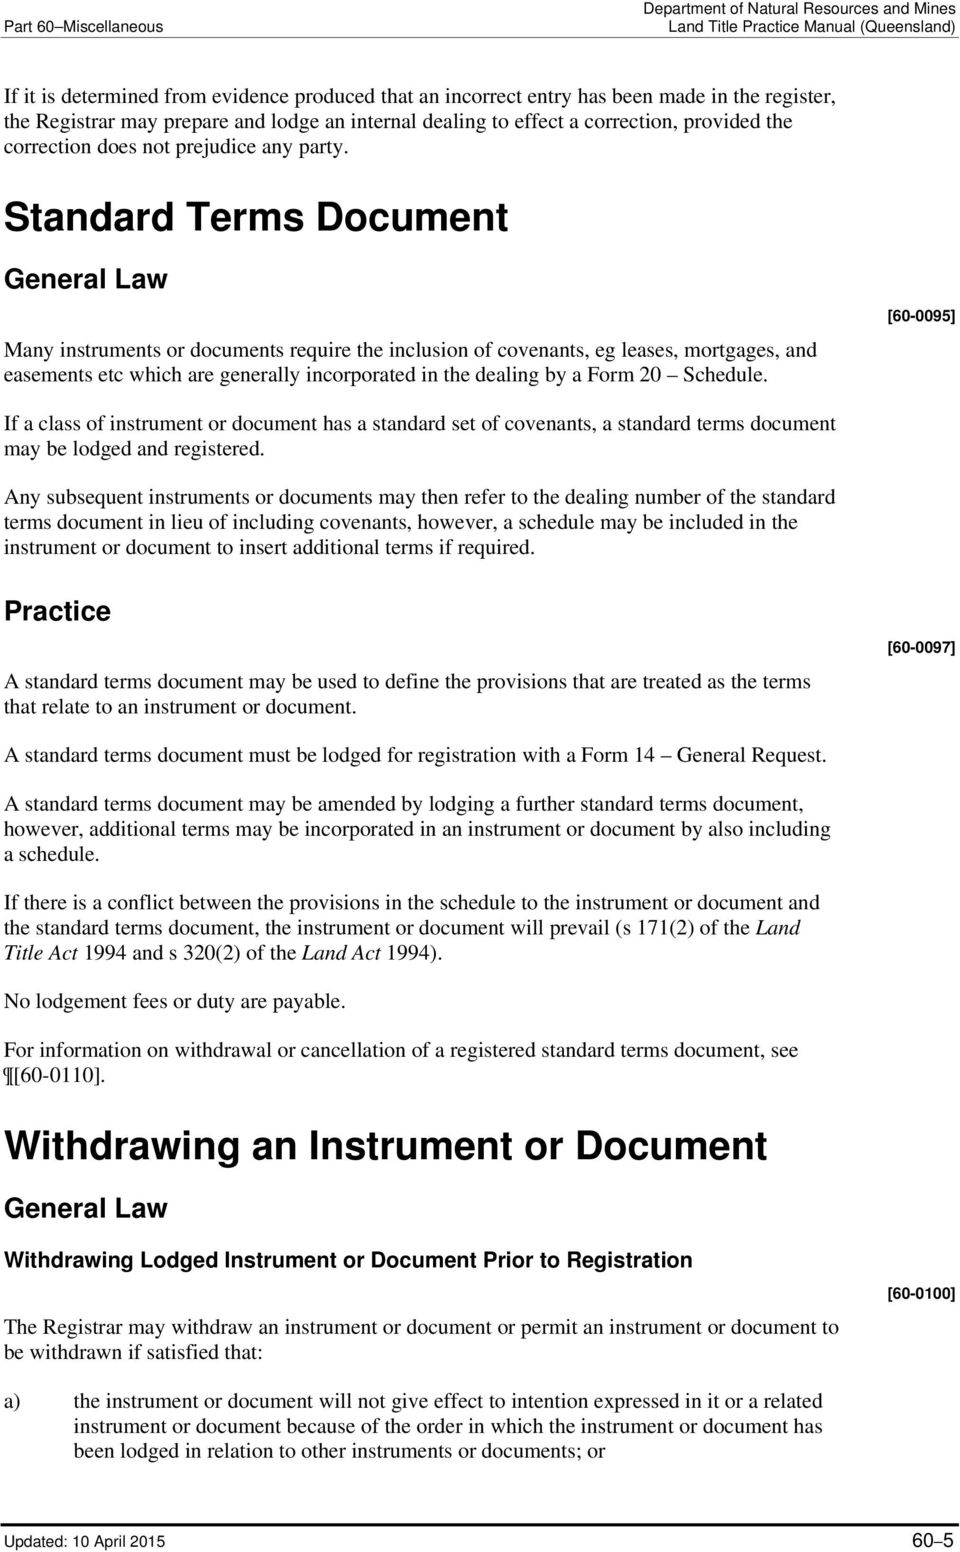 Standard Terms Document General Law Many instruments or documents require the inclusion of covenants, eg leases, mortgages, and easements etc which are generally incorporated in the dealing by a Form